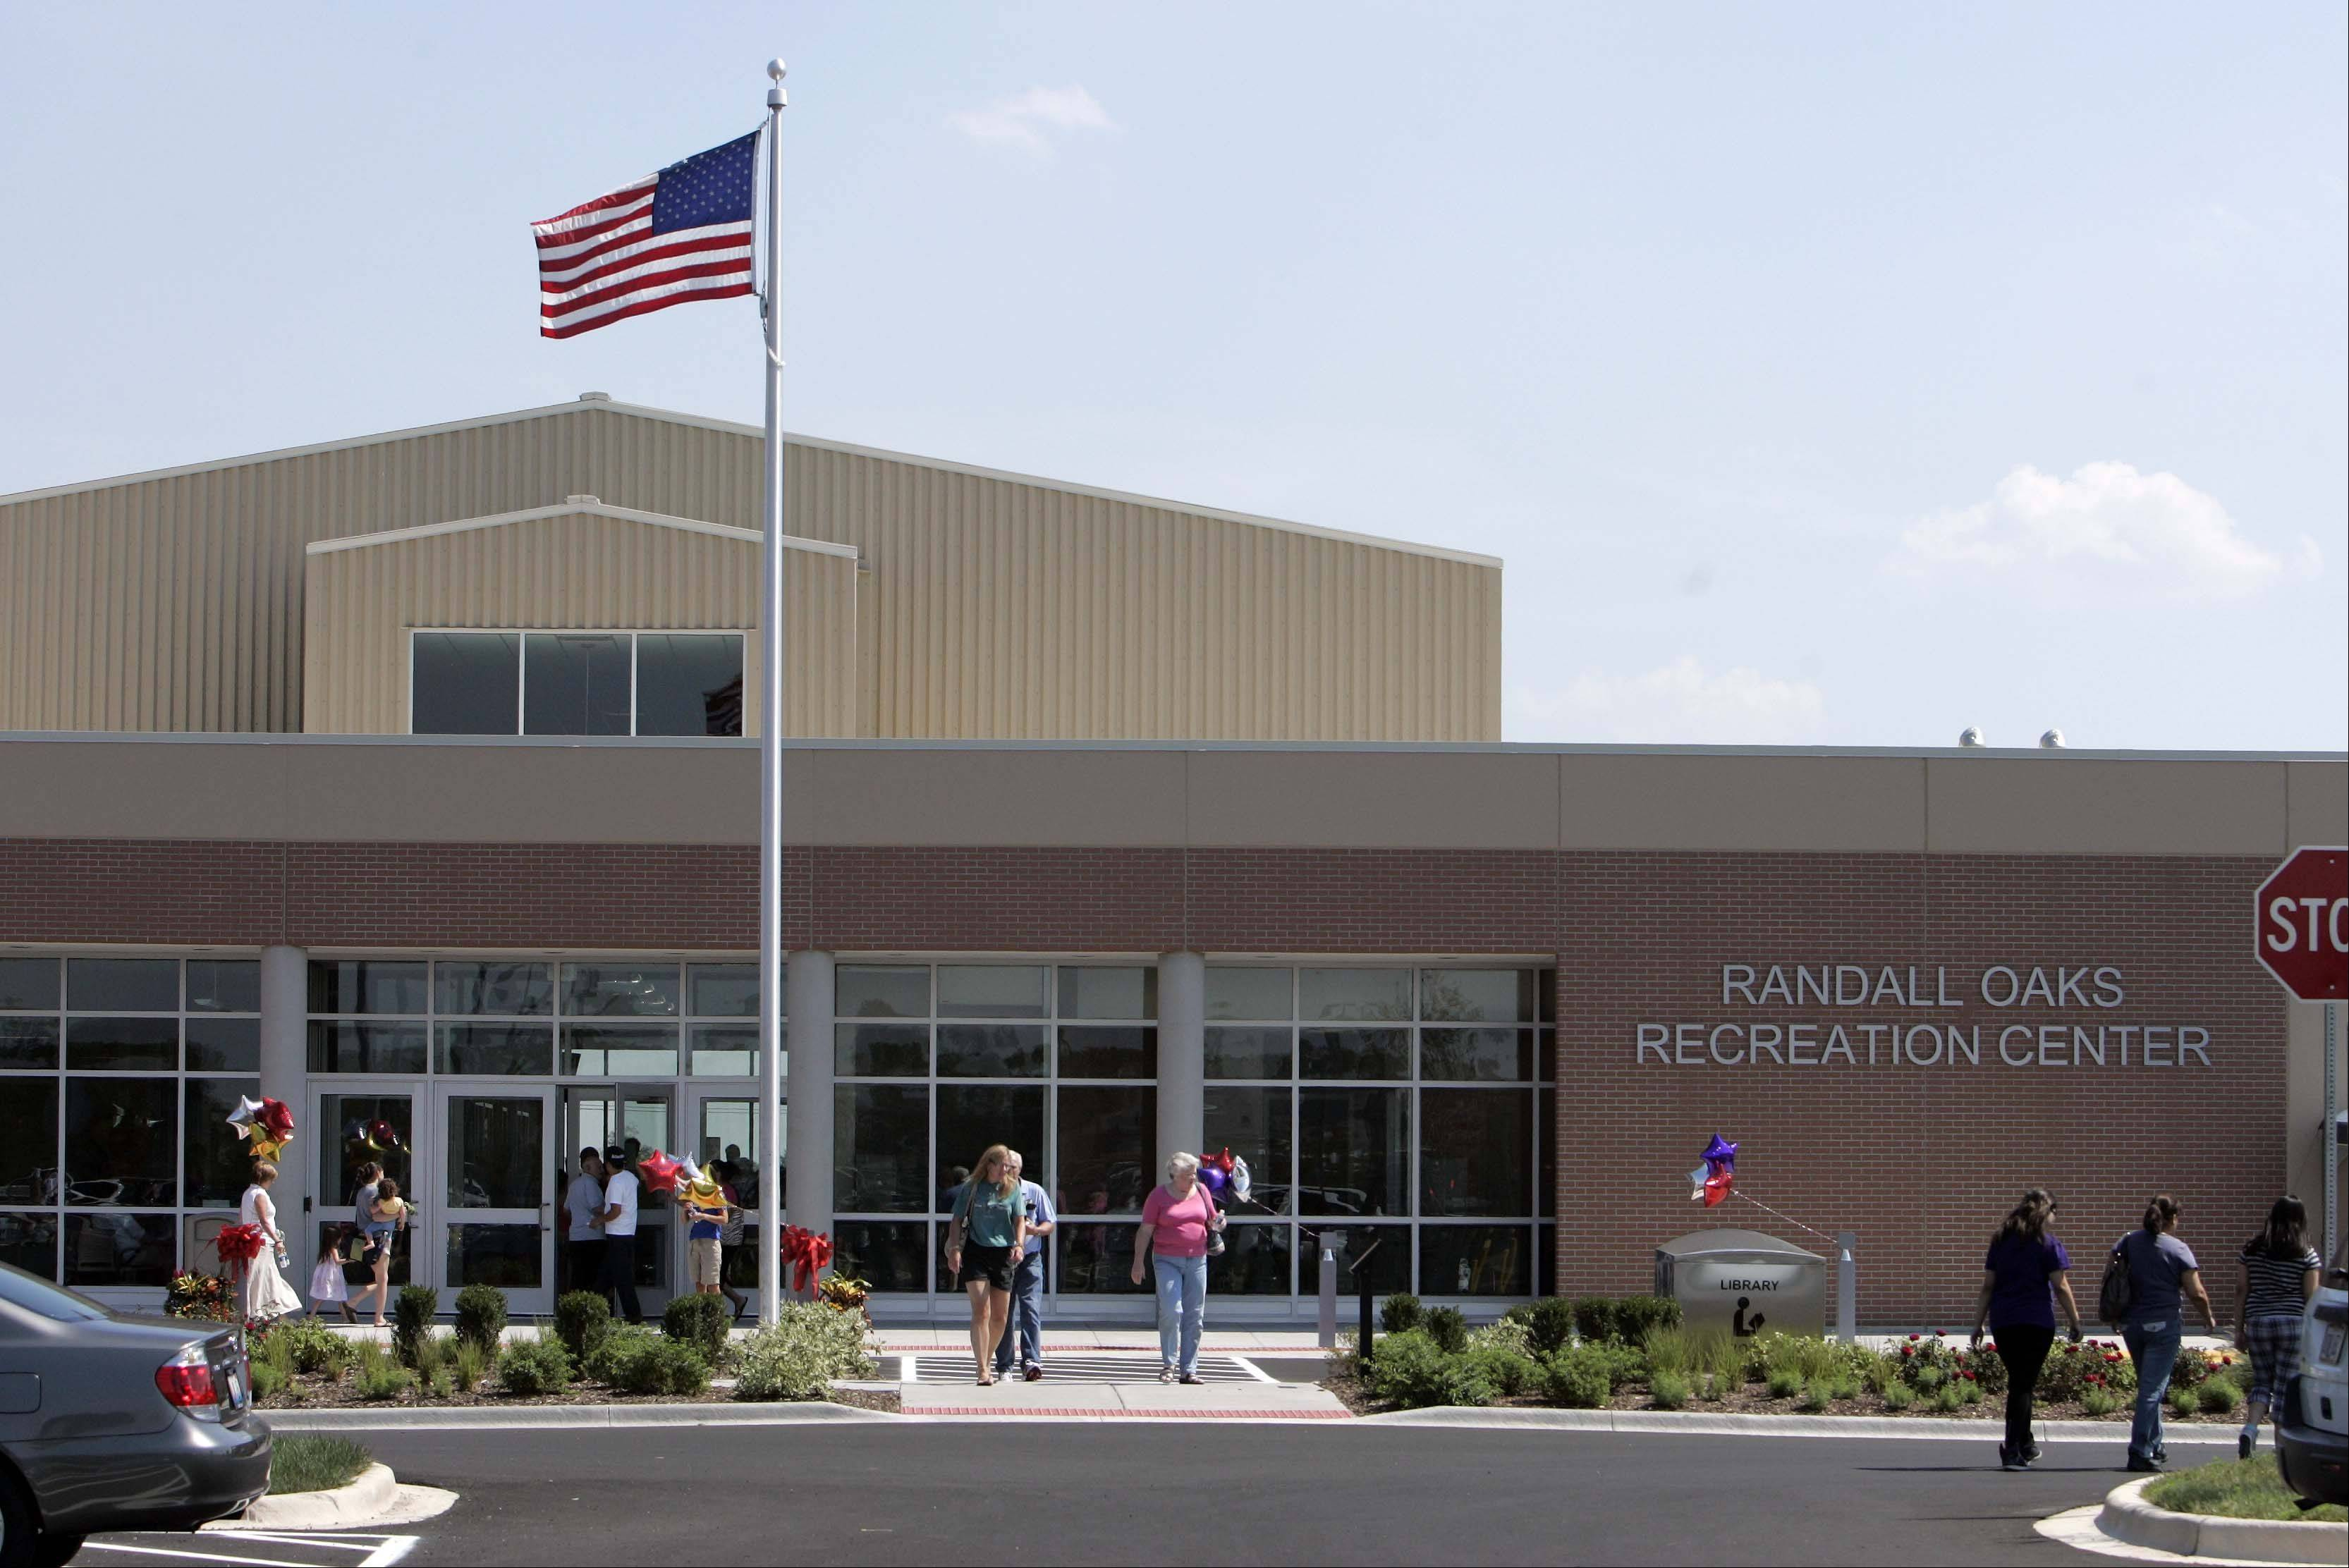 The grand opening of the Dundee Township Park District's Randall Oaks Recreation Center in West Dundee drew nearly 3,500 people, officials said.